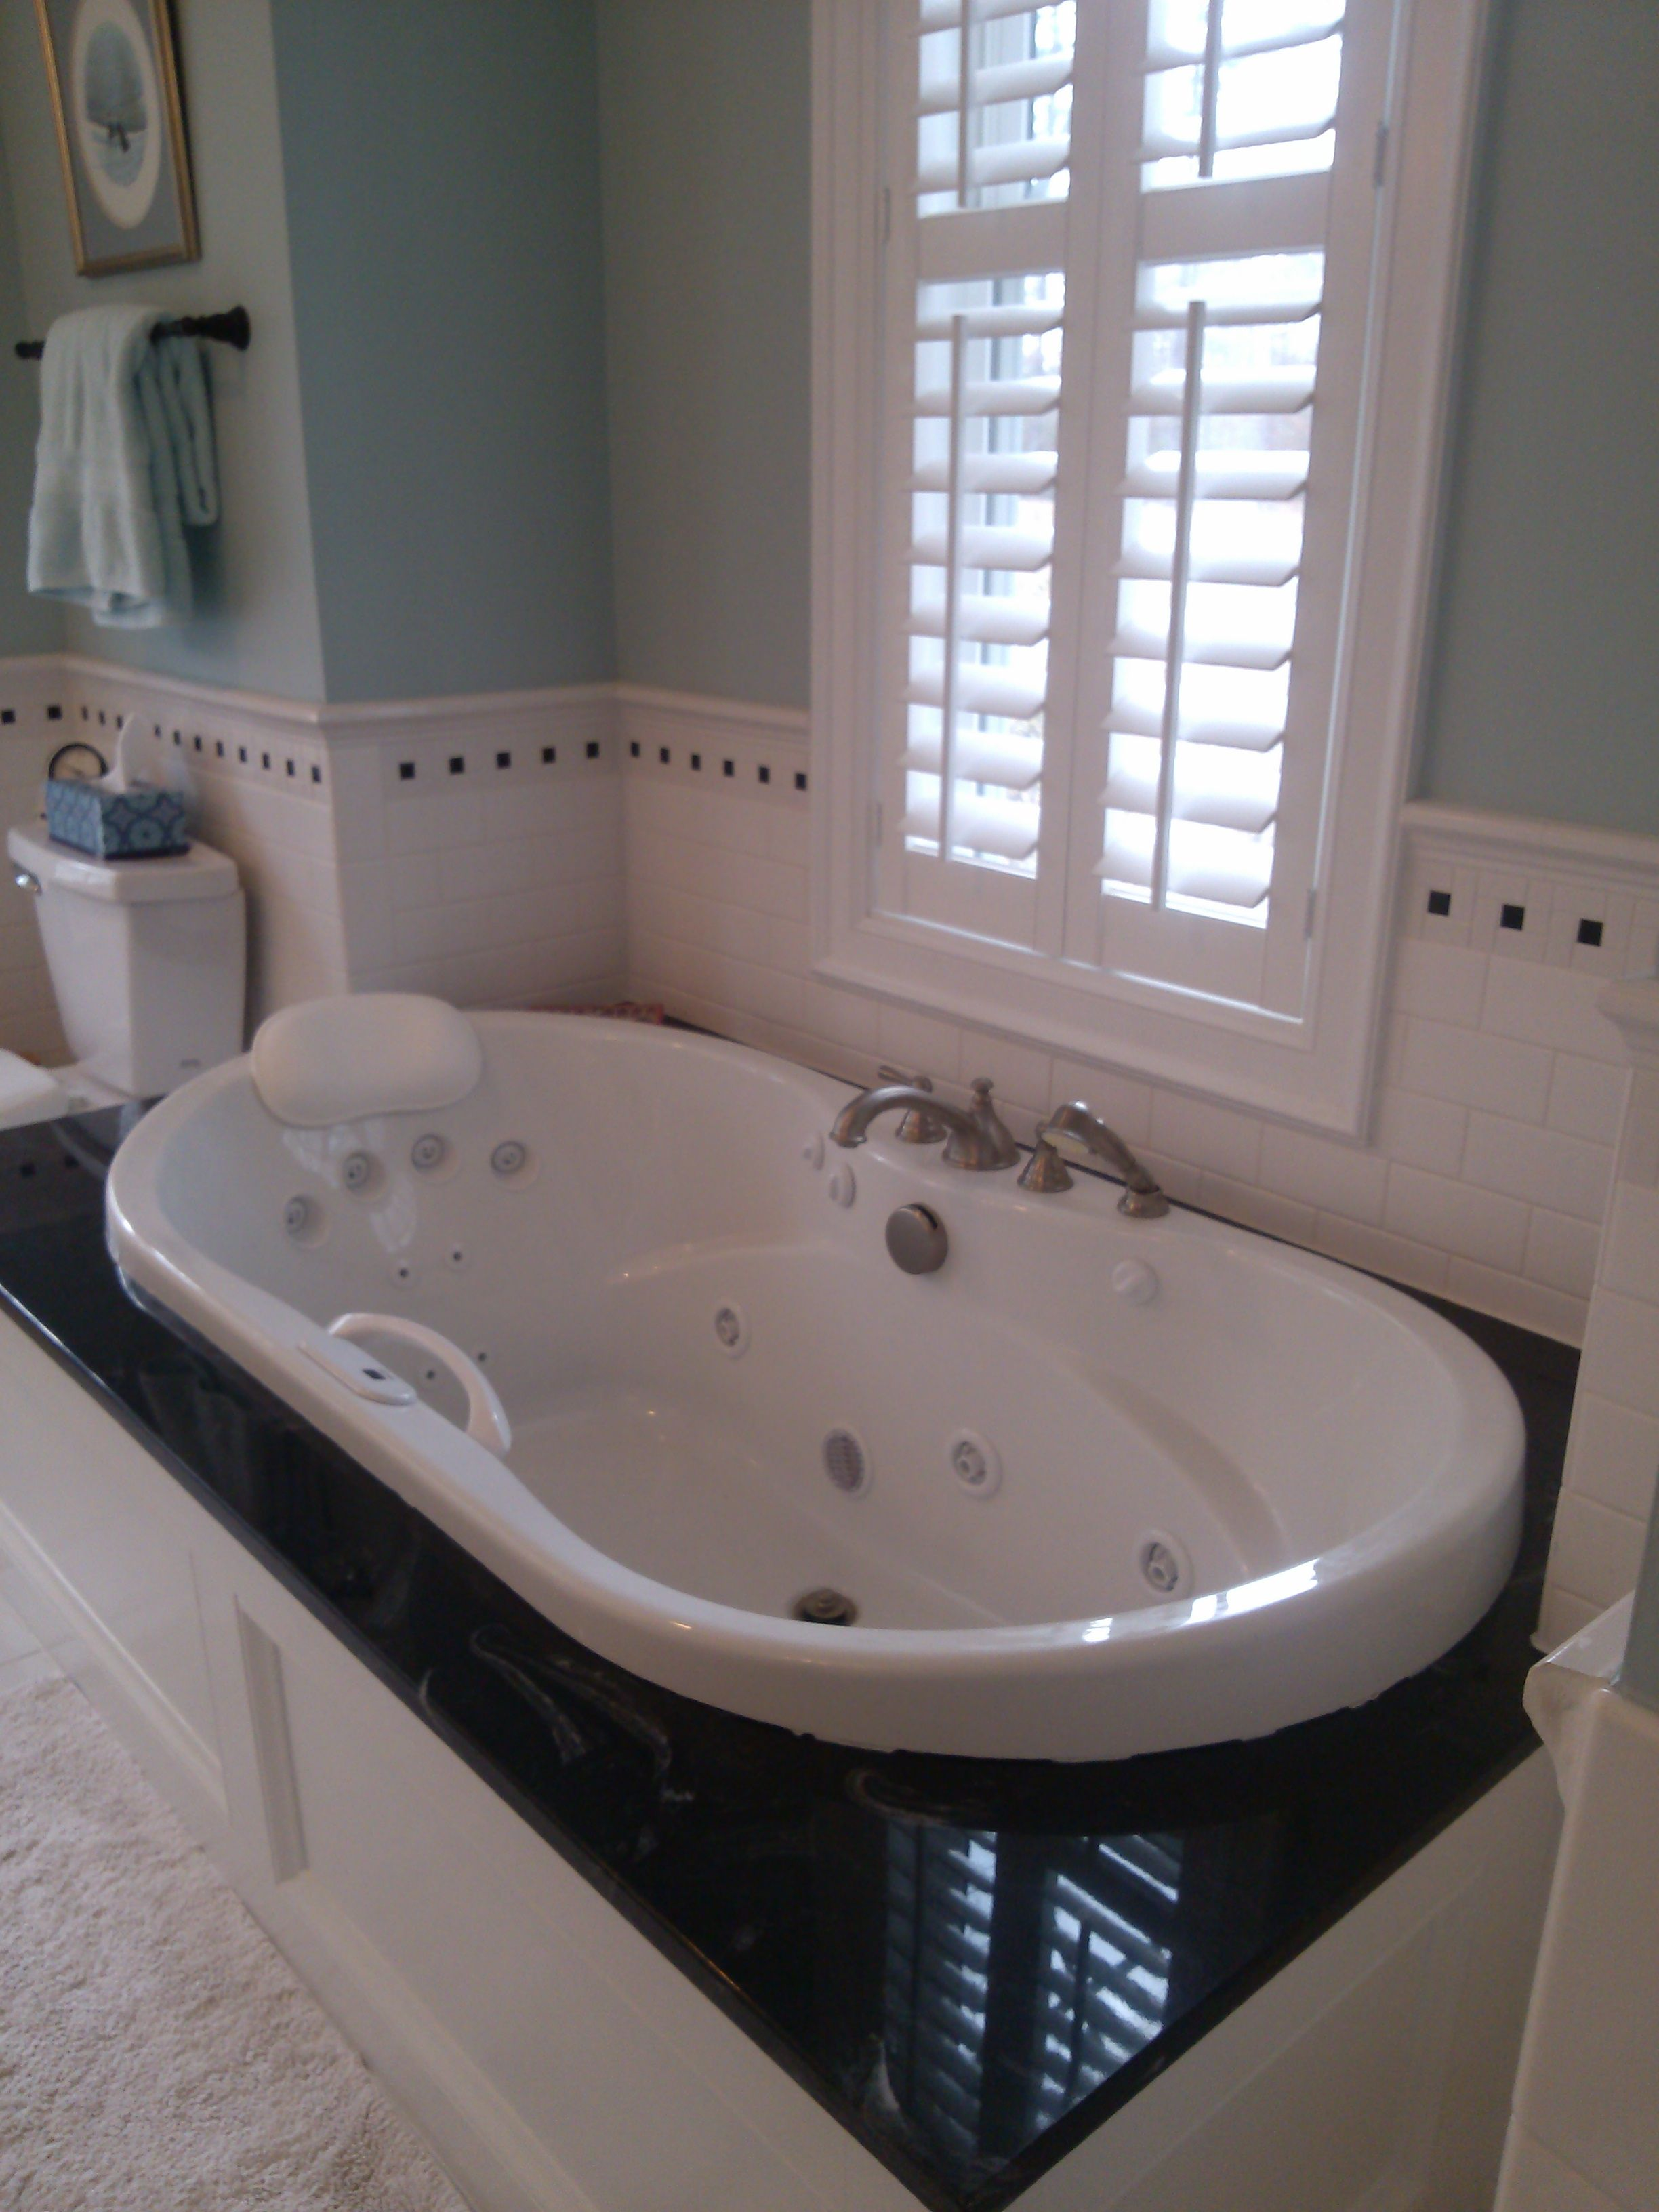 Relaxing in luxury, Black & White cultured marble surround ...